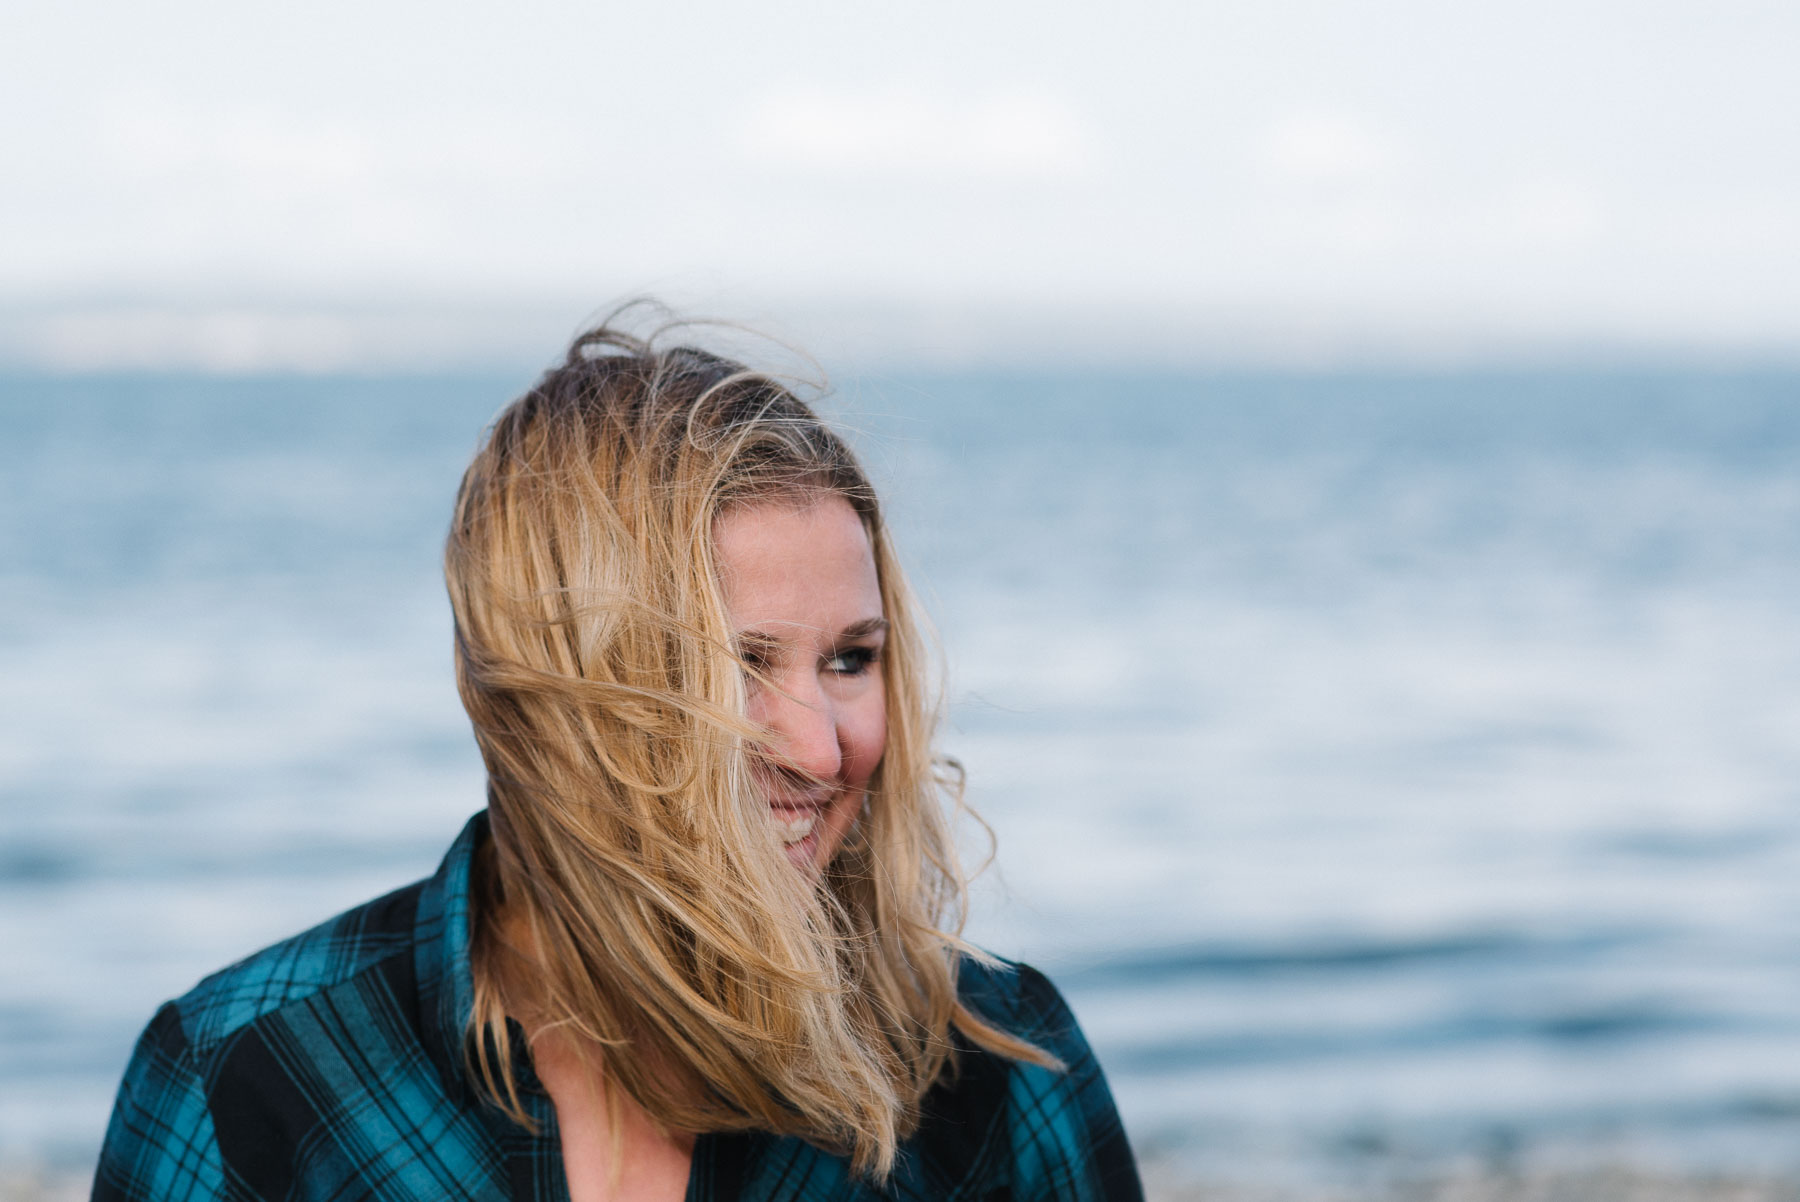 Portrait of caucasian woman with long blonde hair blowing in face at beach